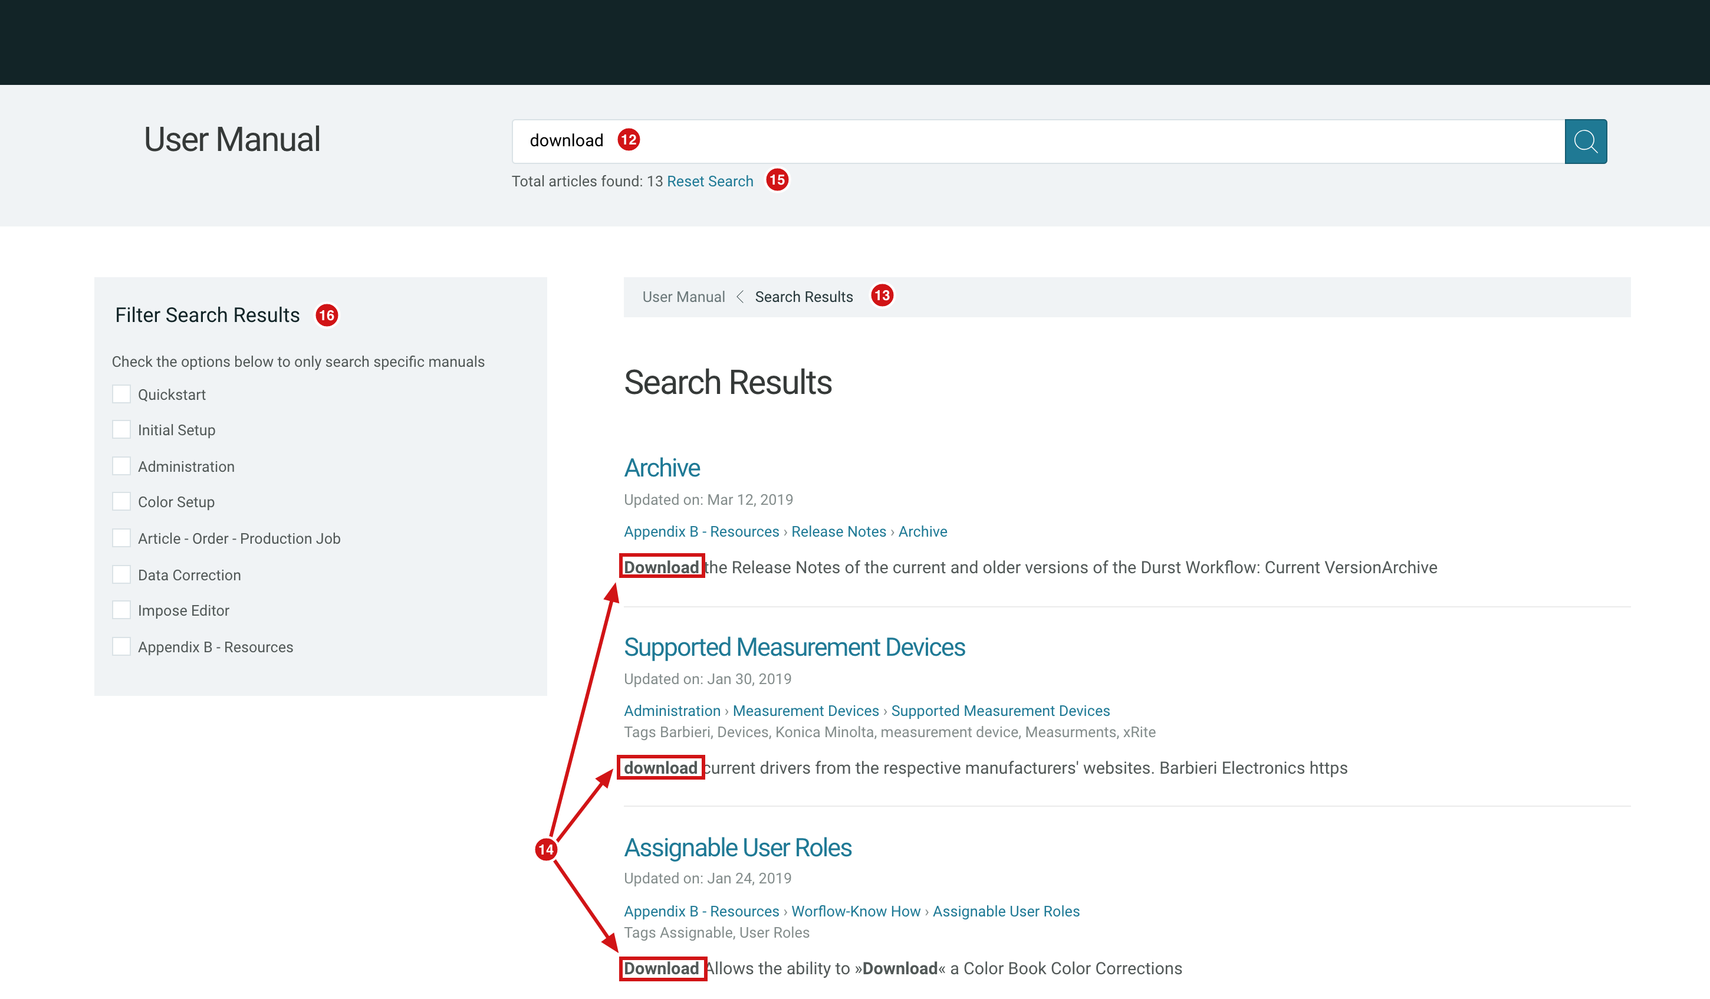 Search by Keyword or Topic